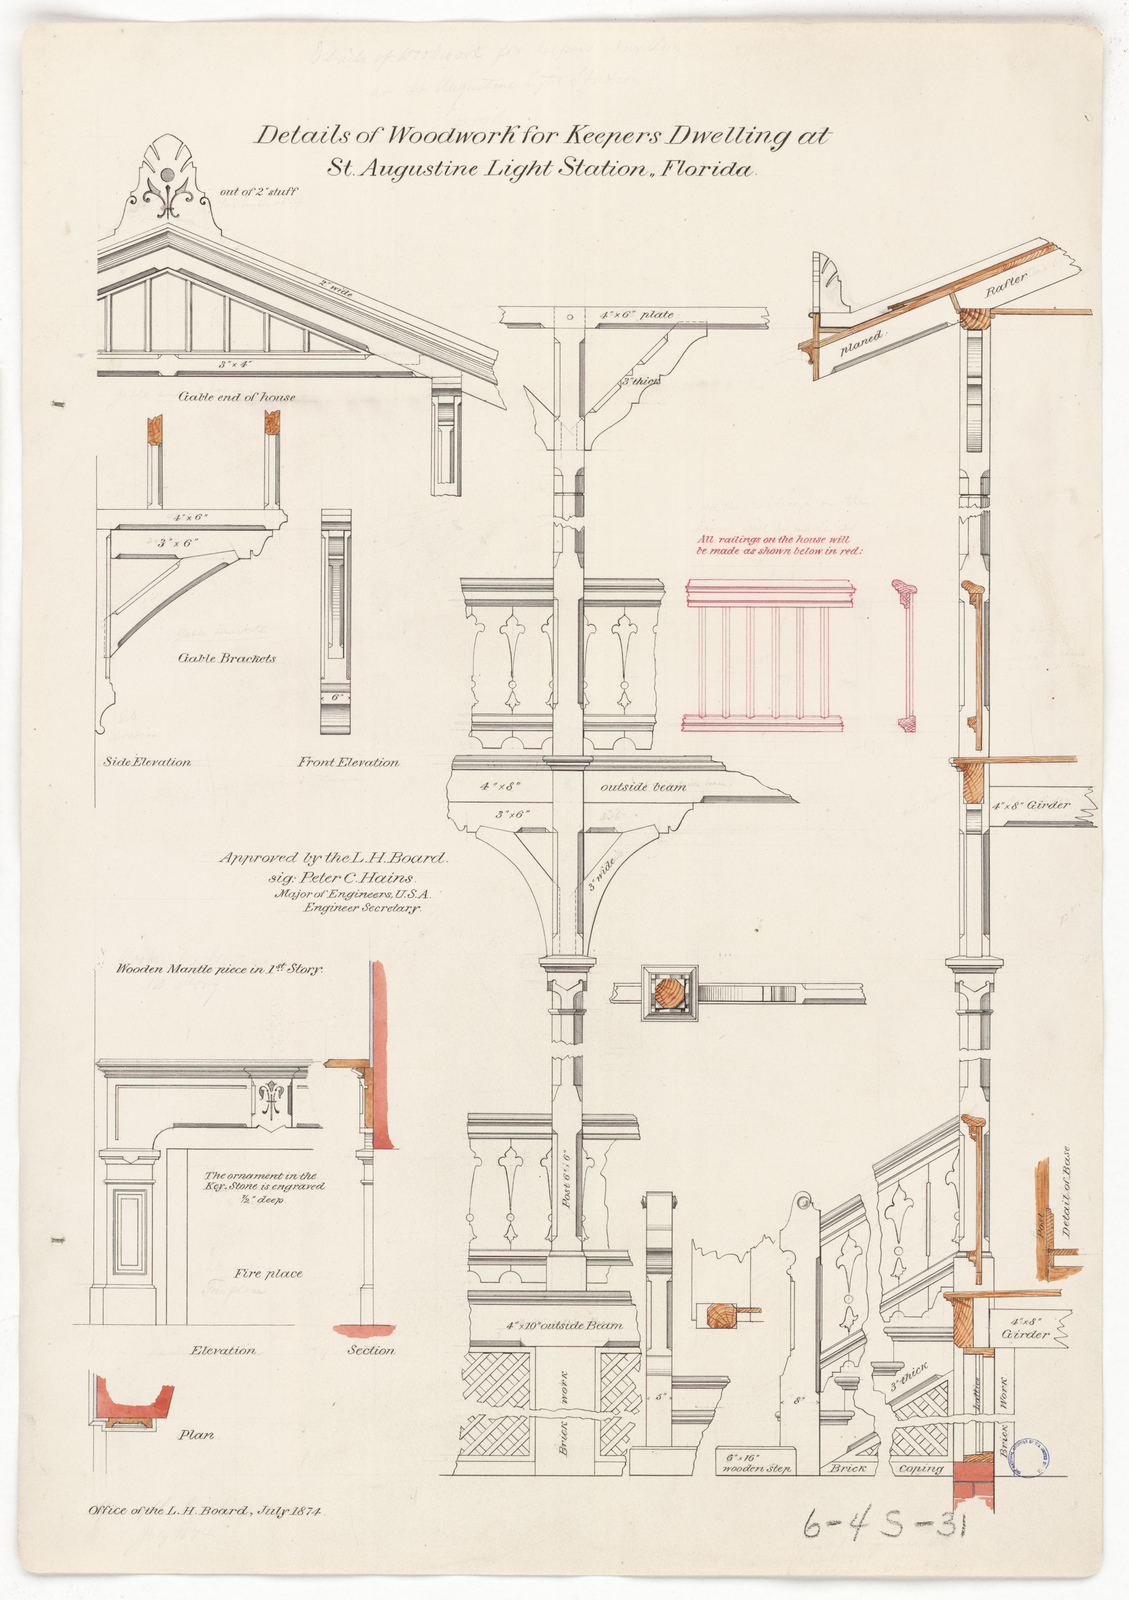 Drawing Showing Woodwork Details For The Lighthouse Dwelling At Saint Augustine Florida